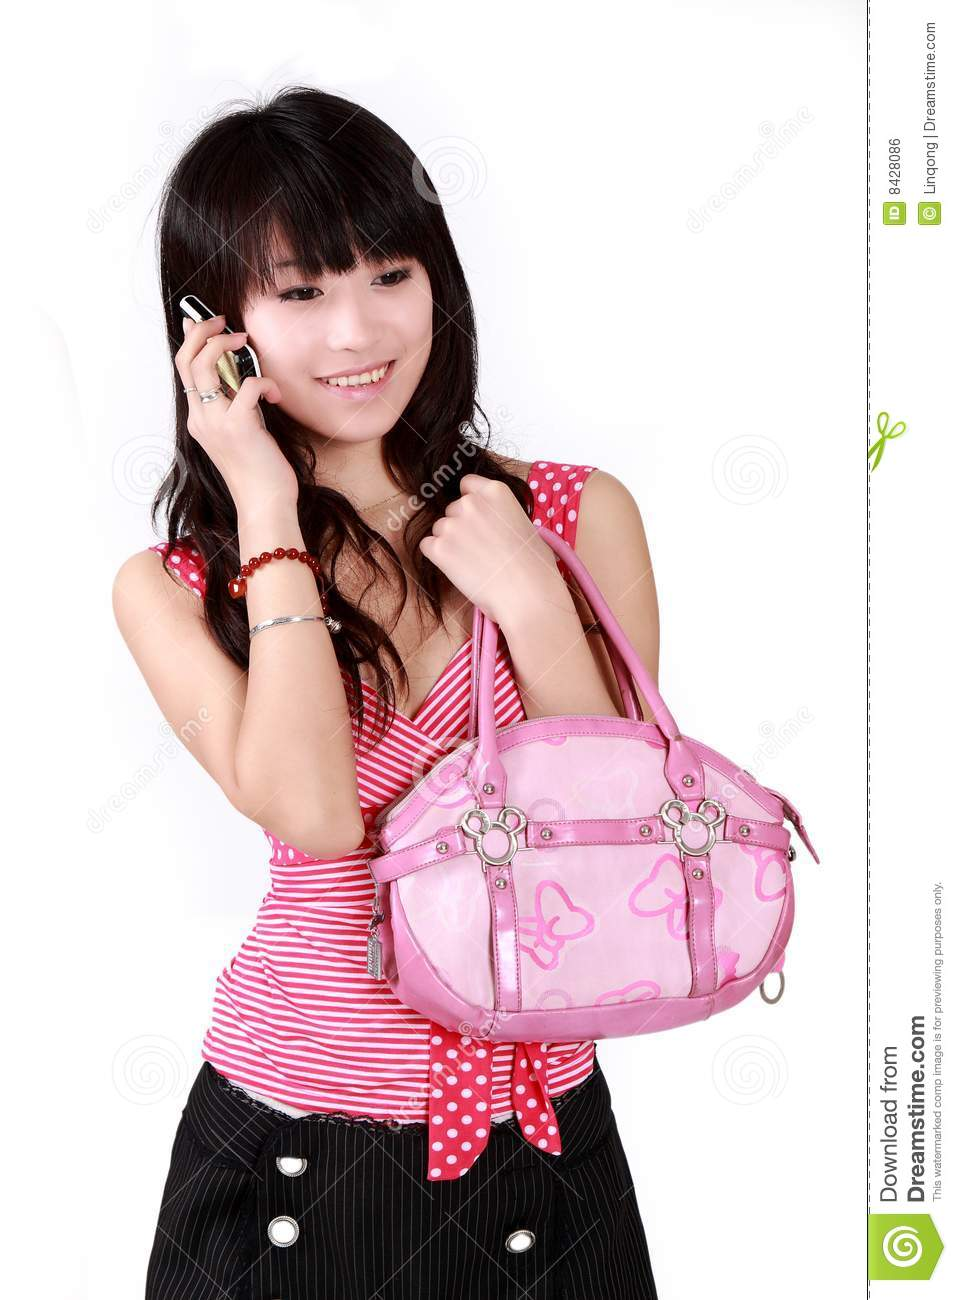 Asian girl on cell phone.